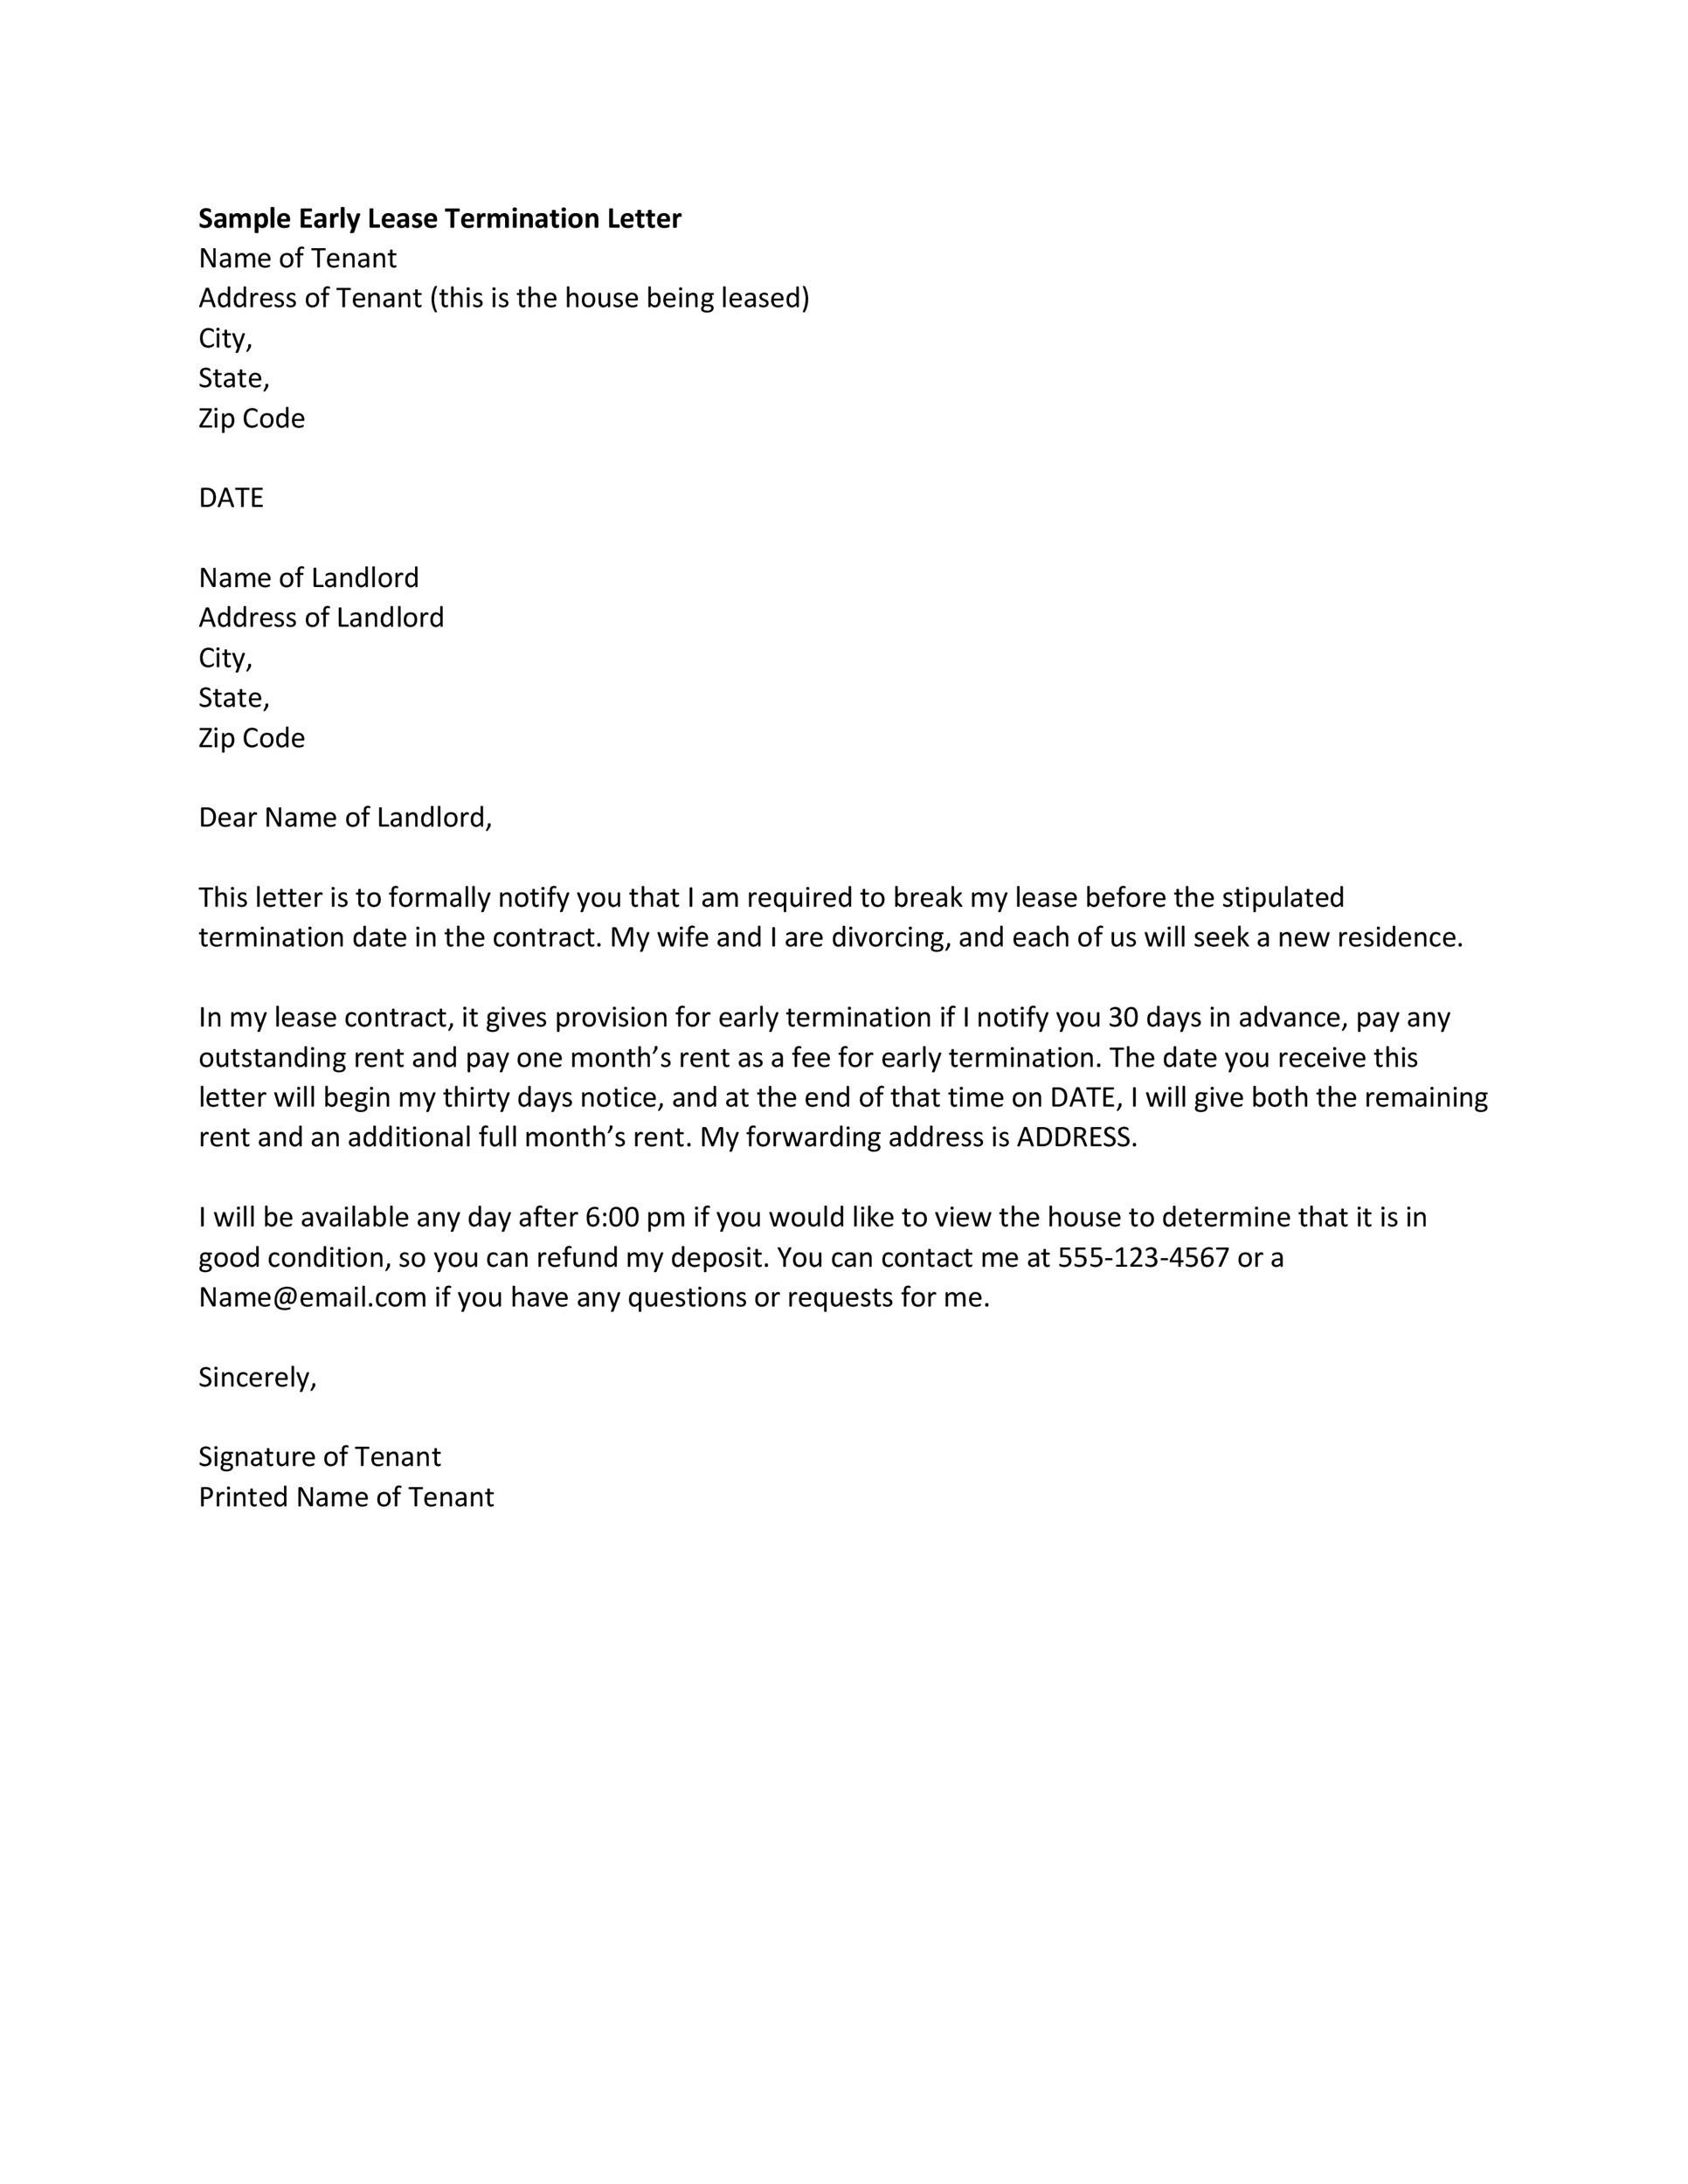 Lease Termination Letter Example from templatelab.com